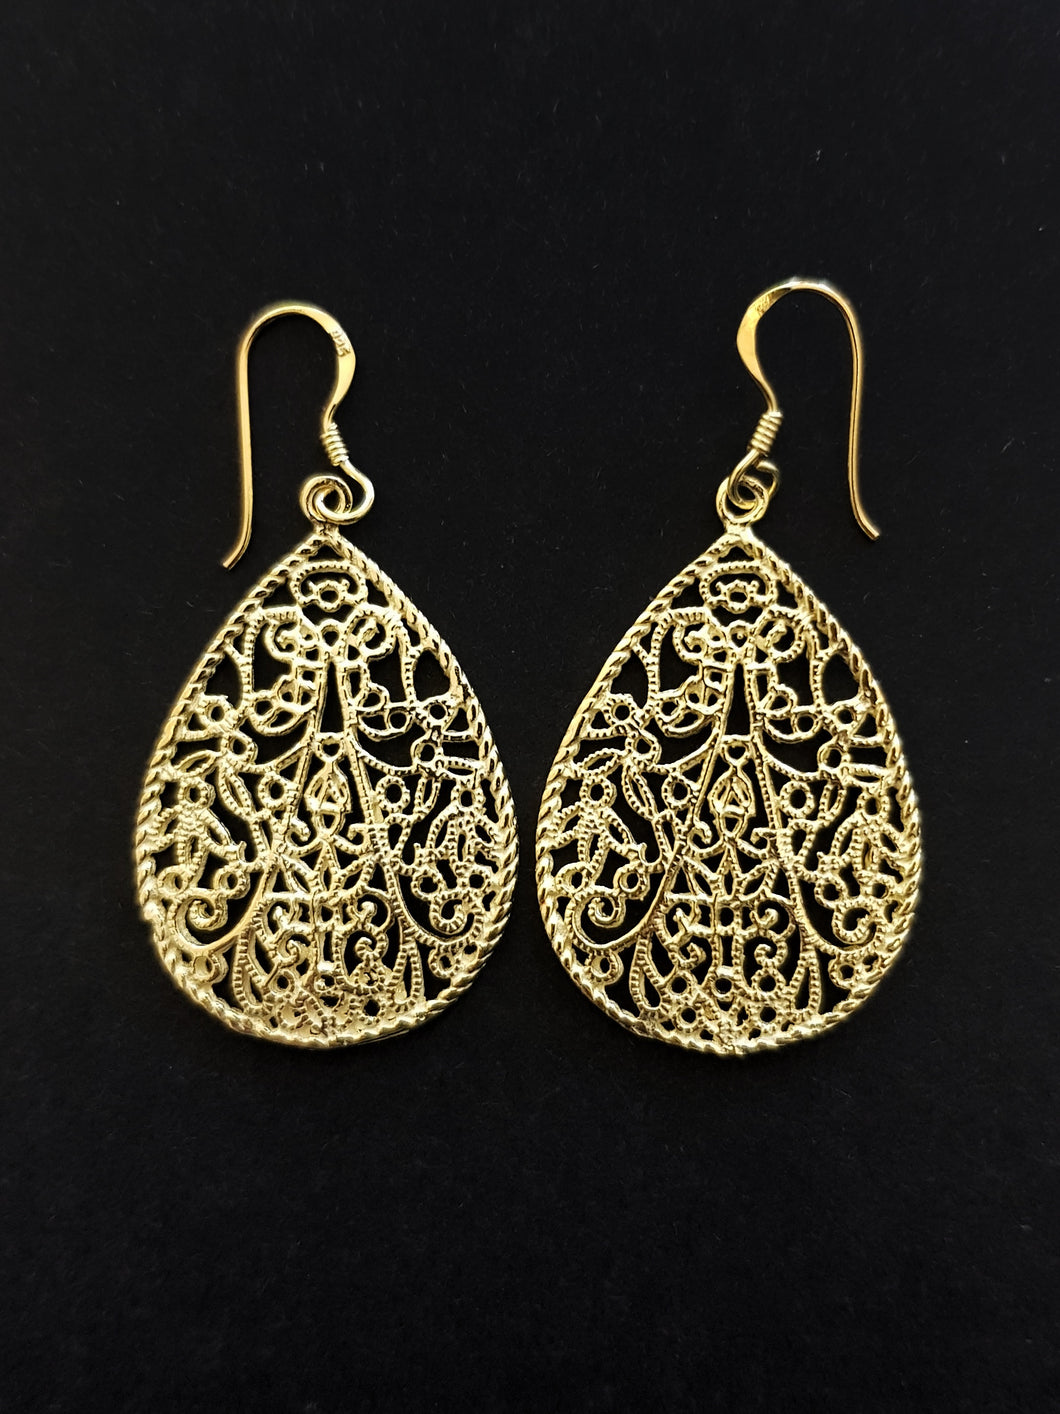 Gold Plated Filigree Earrings